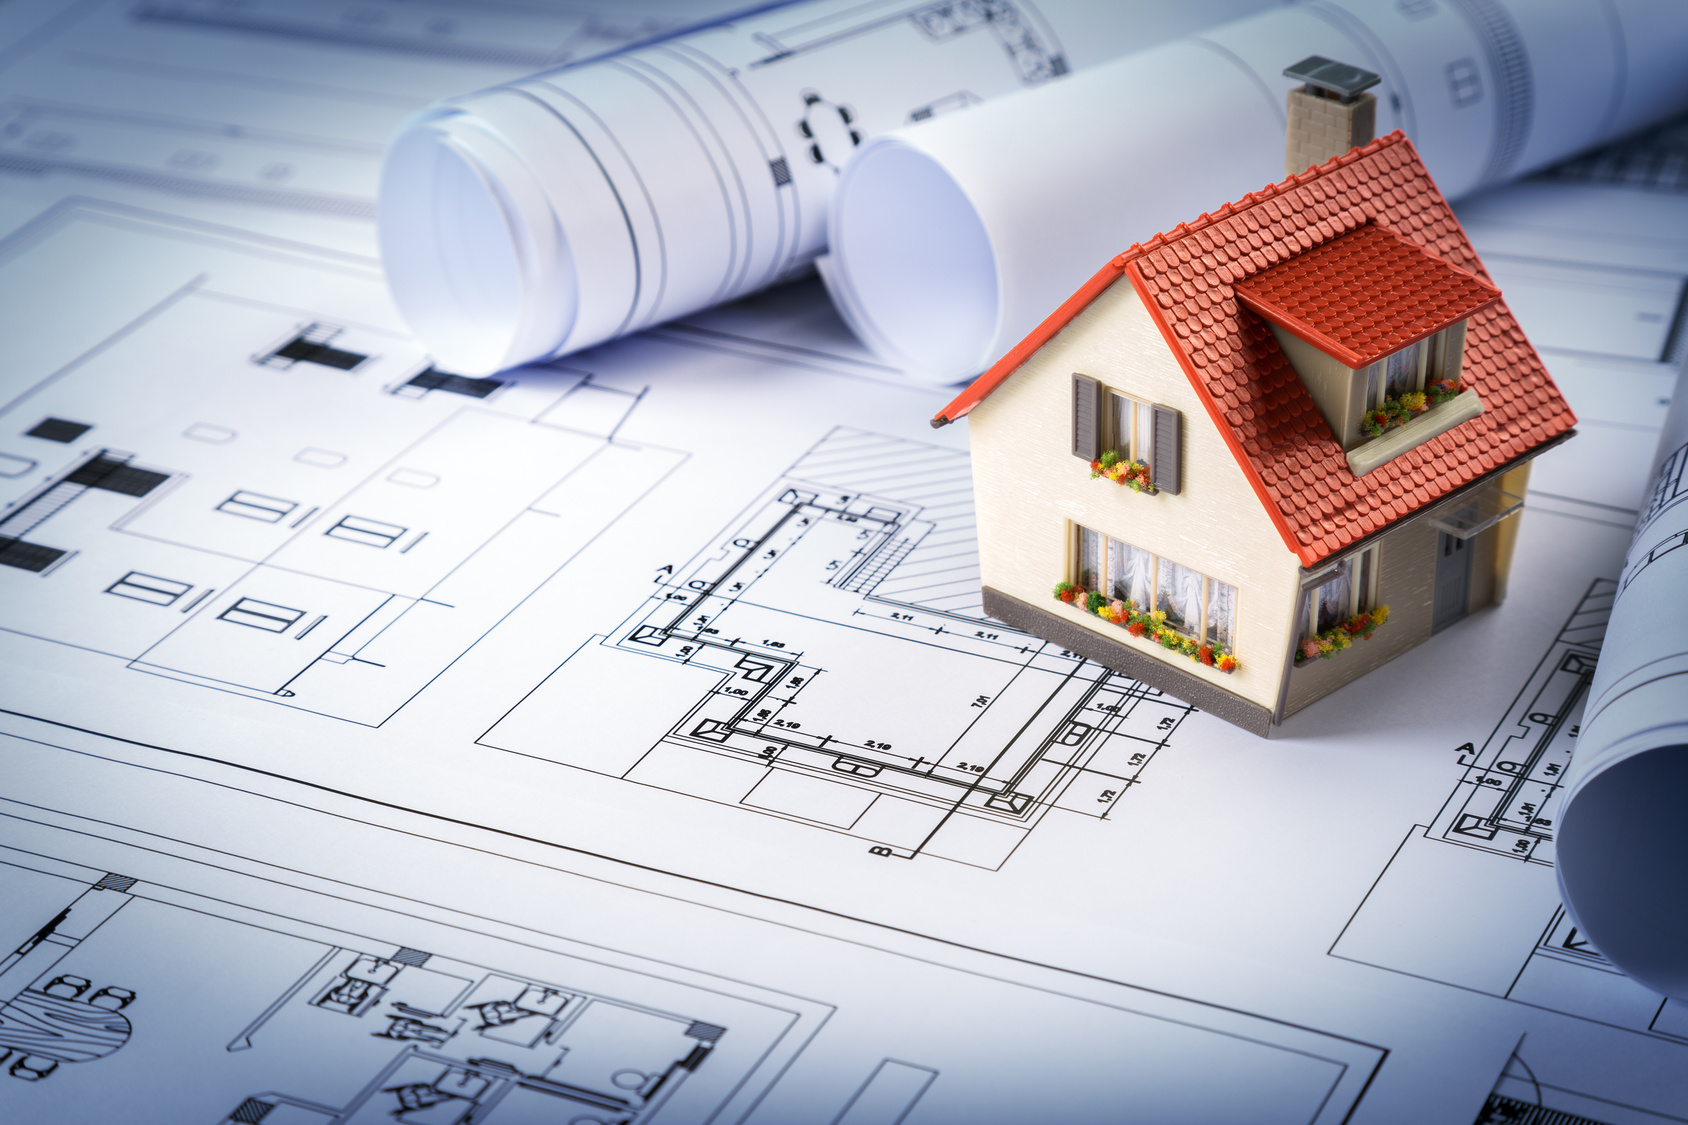 Le tarif pour faire r aliser les plans d 39 une maison les for Modification de plan de maison